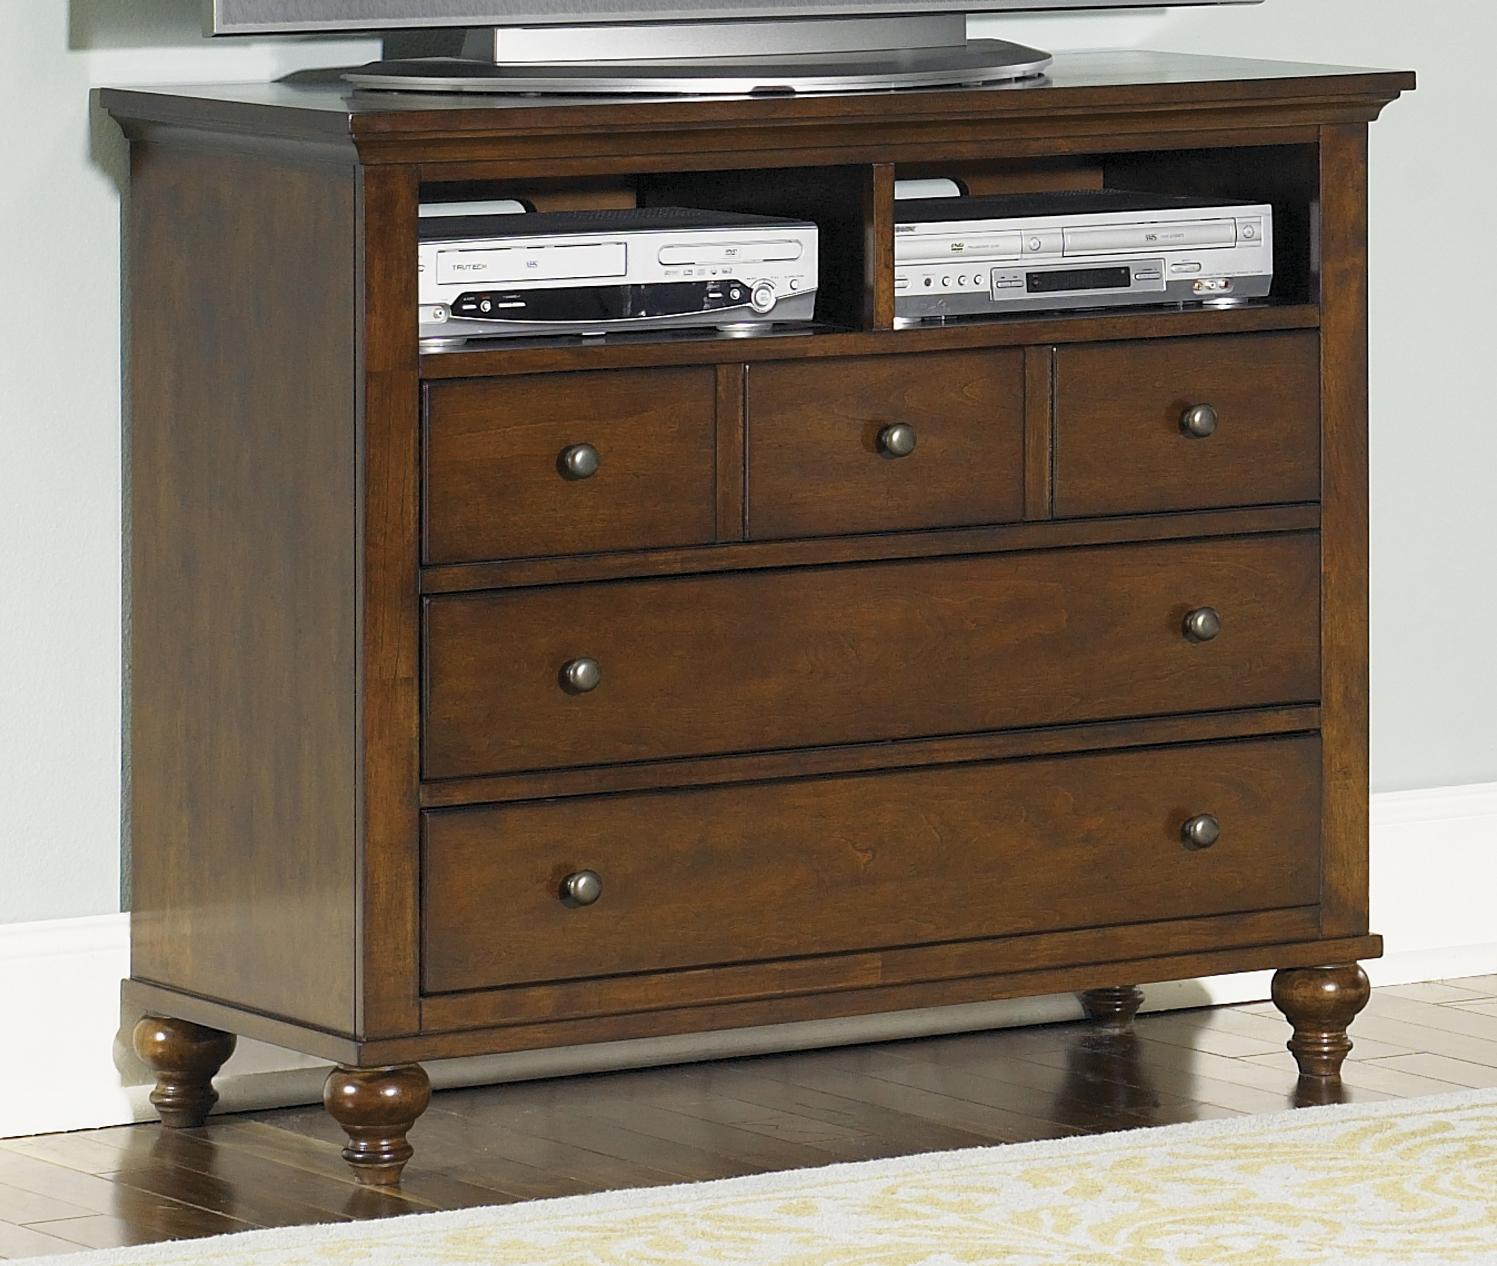 Liberty Furniture Hamilton 341 Br45 Media Chest Northeast Factory Direct Media Chests